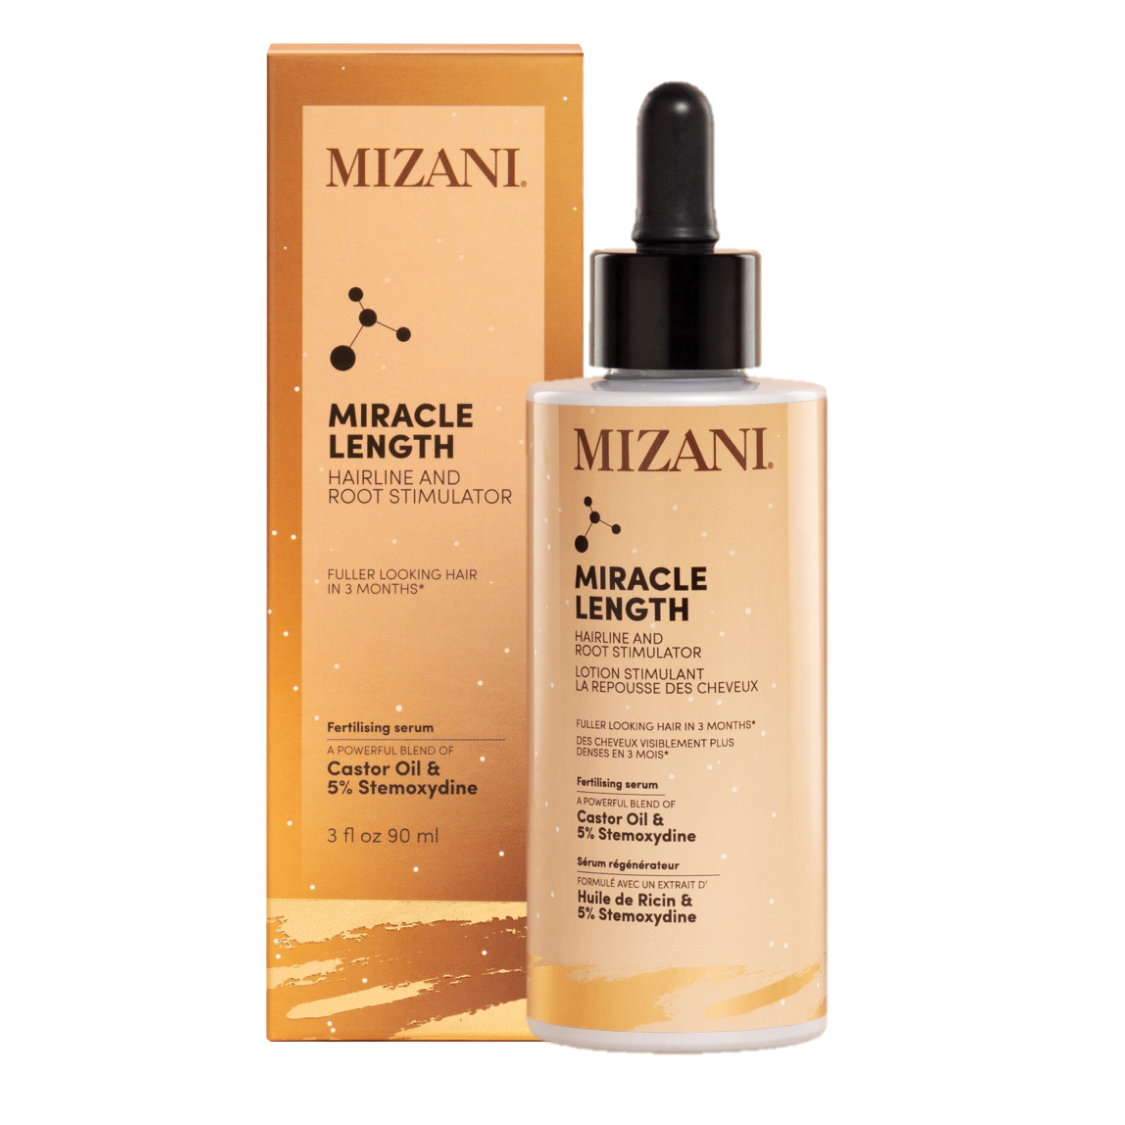 Mz Mrcl Lengths Serum 90ml